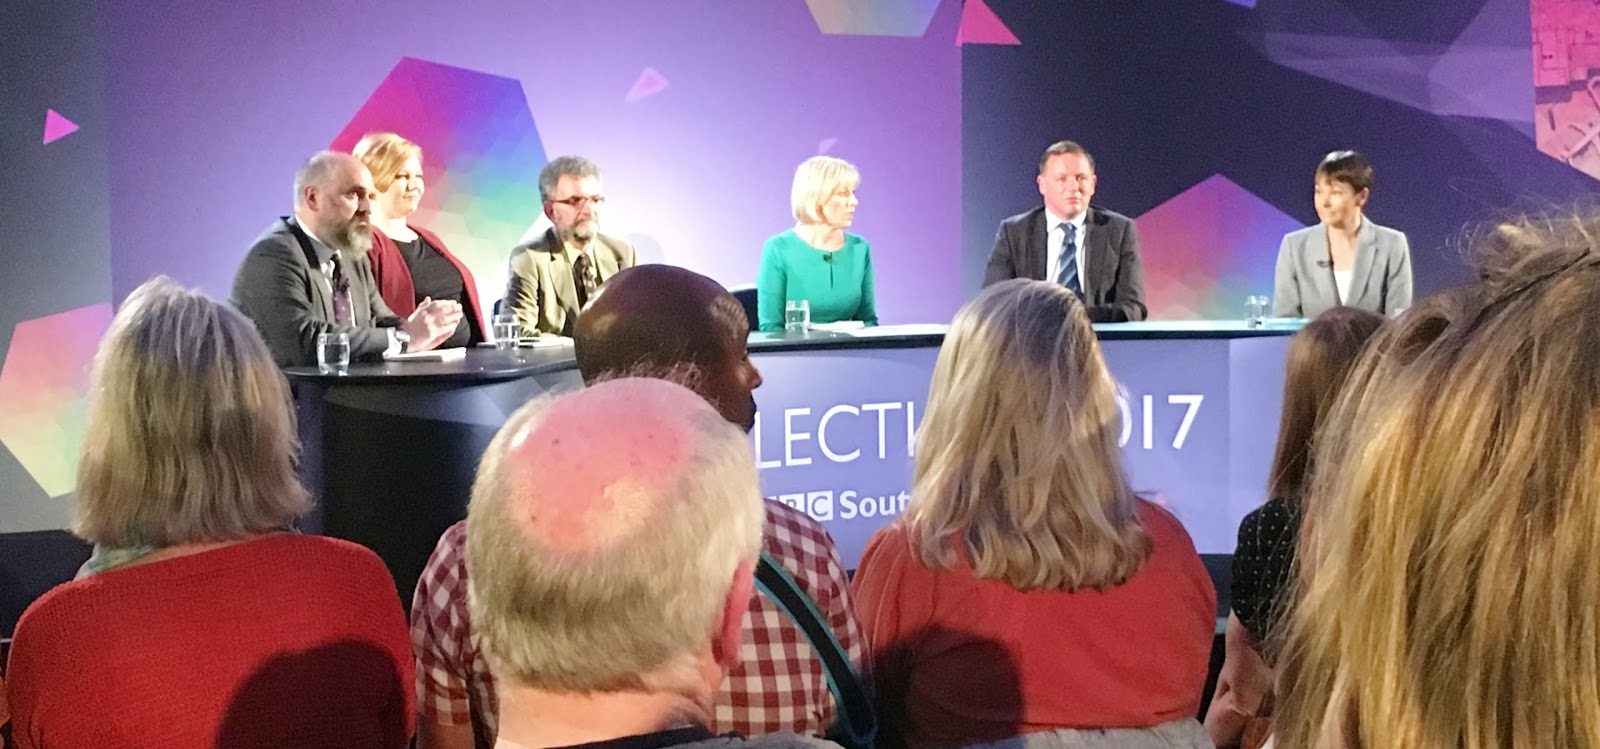 Battleaxe goes to a BBC politics thing – too heated